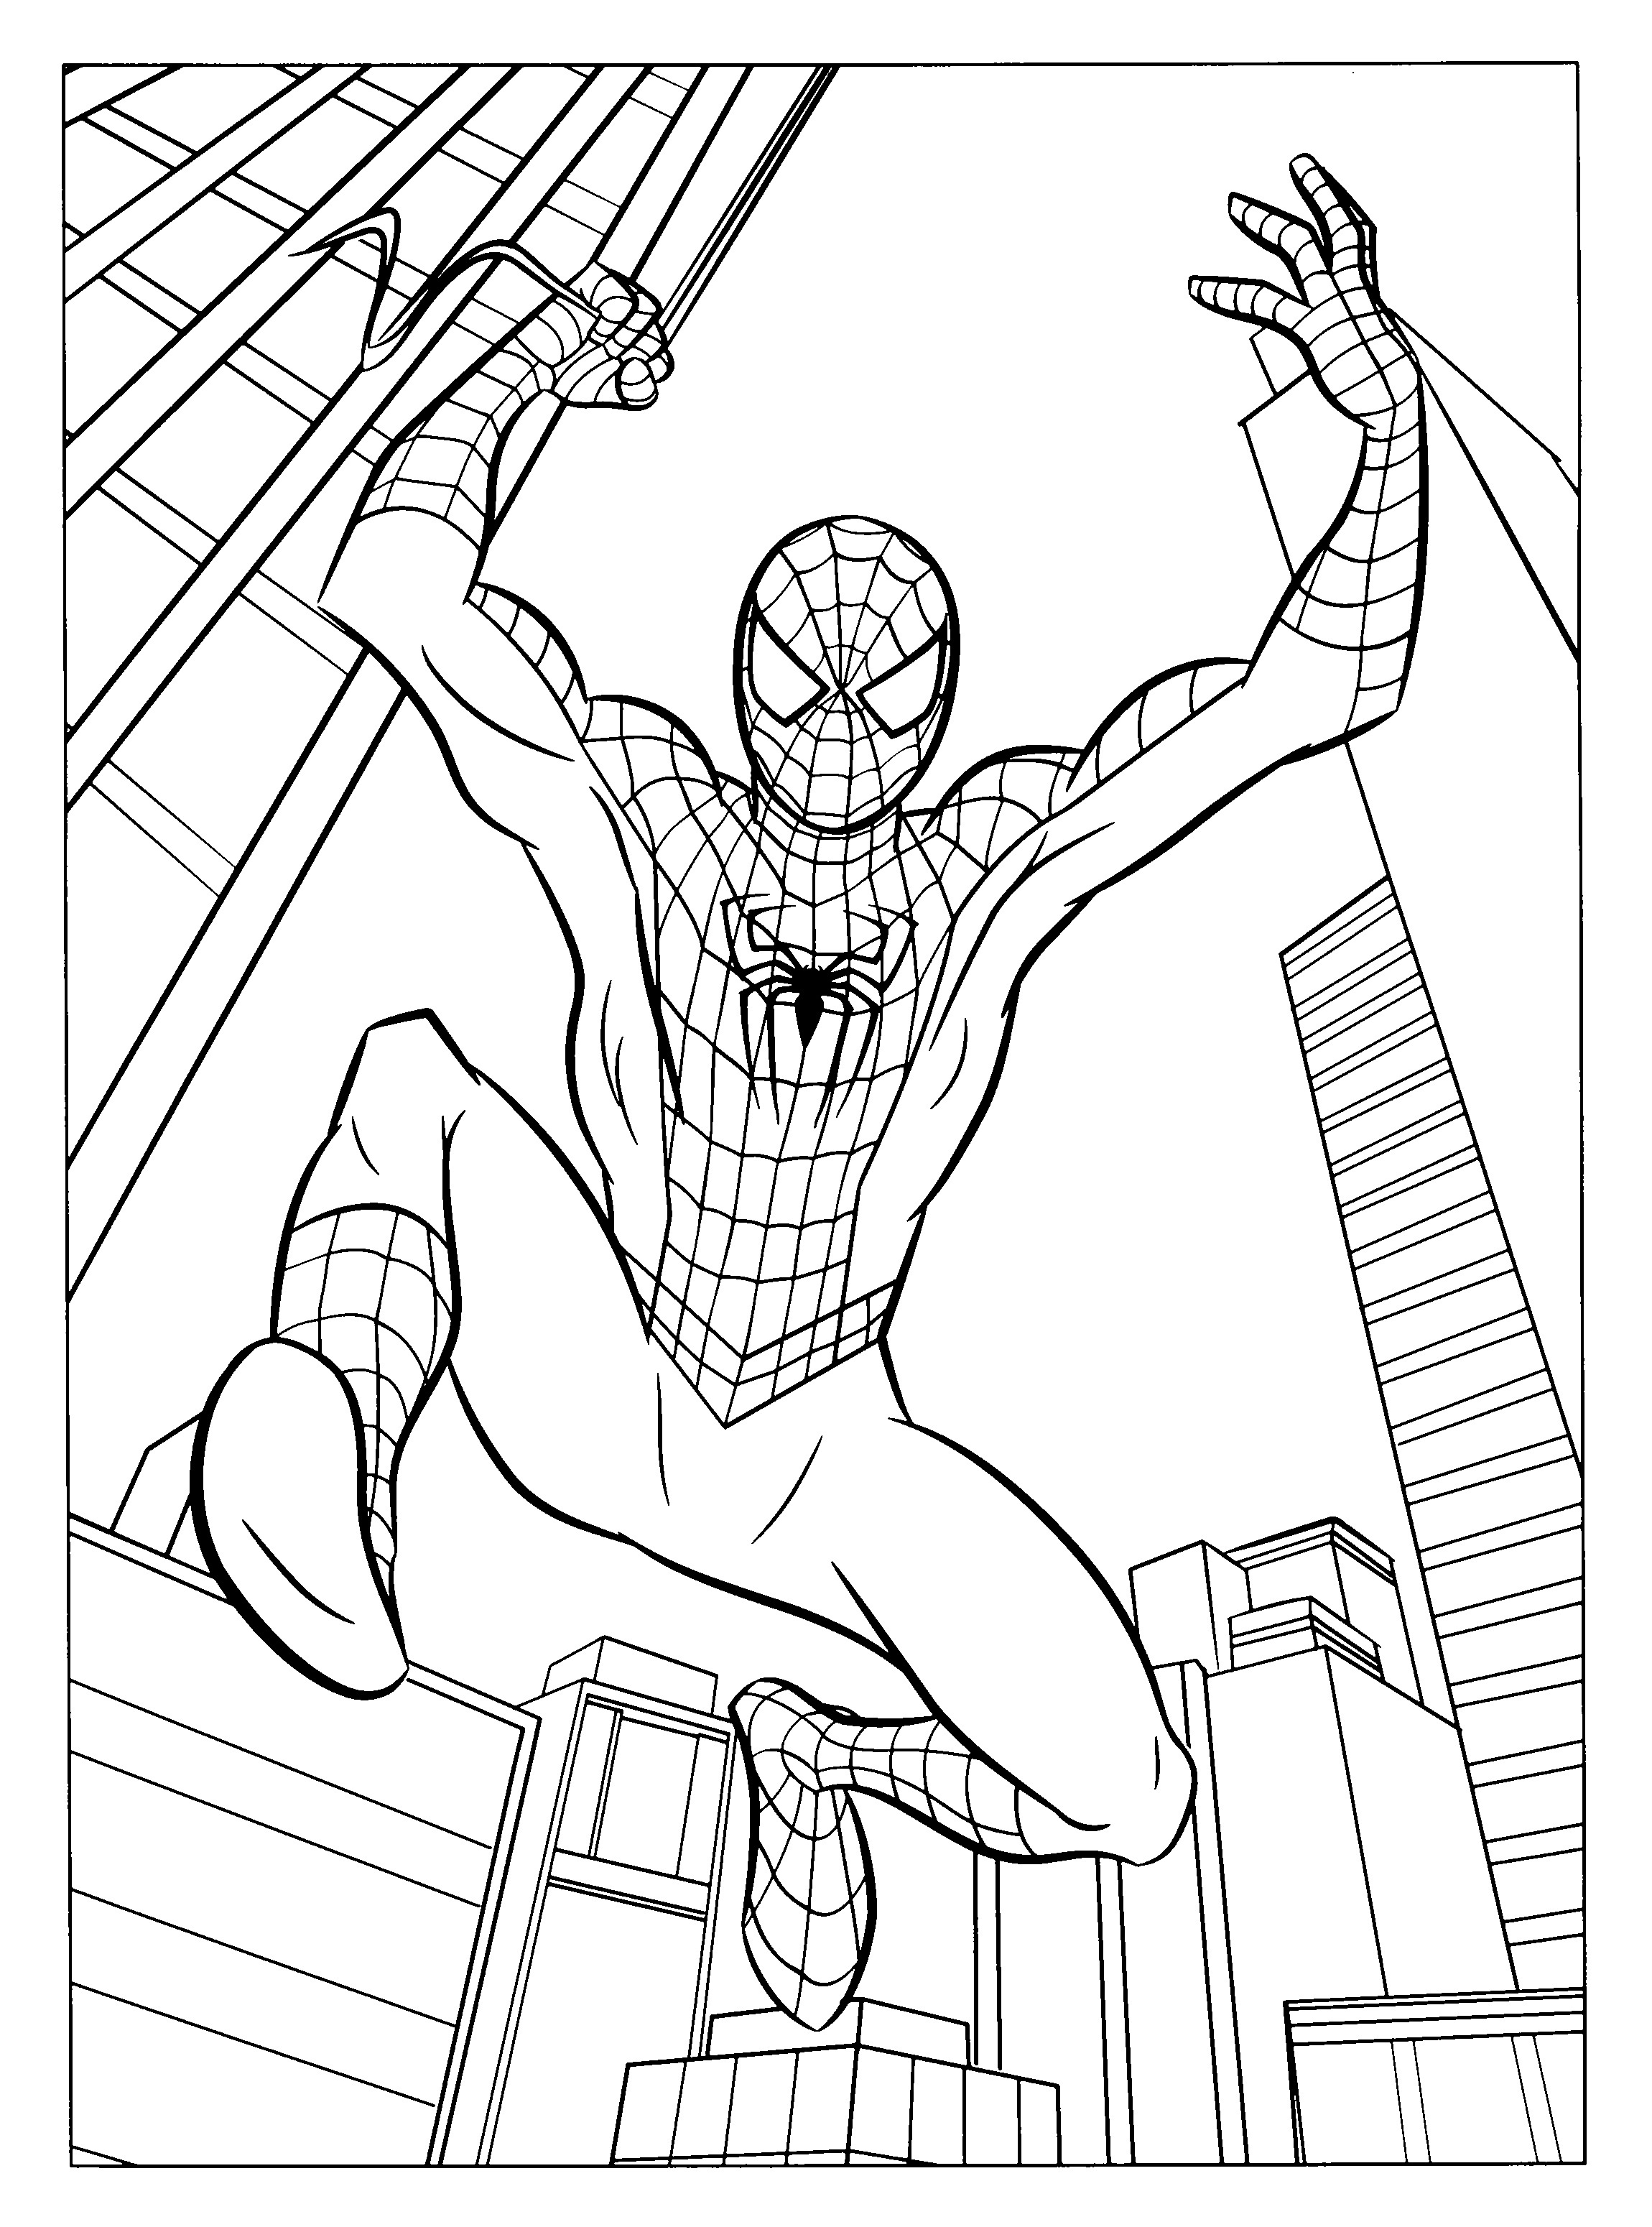 coloring pages man free printable spiderman coloring pages for kids